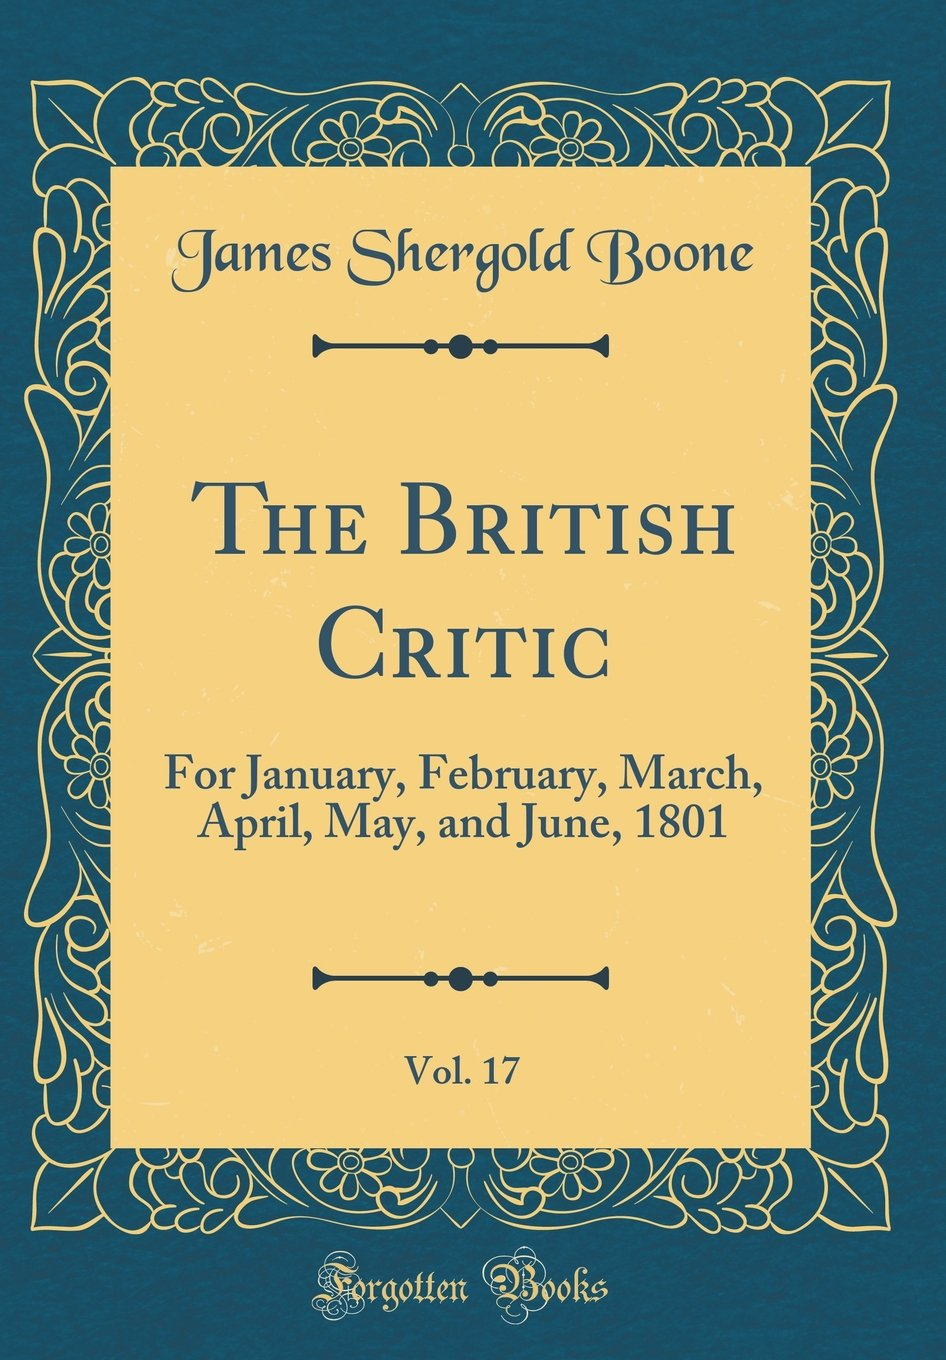 The British Critic, Vol. 17: For January, February, March, April, May, and June, 1801 (Classic Reprint) pdf epub